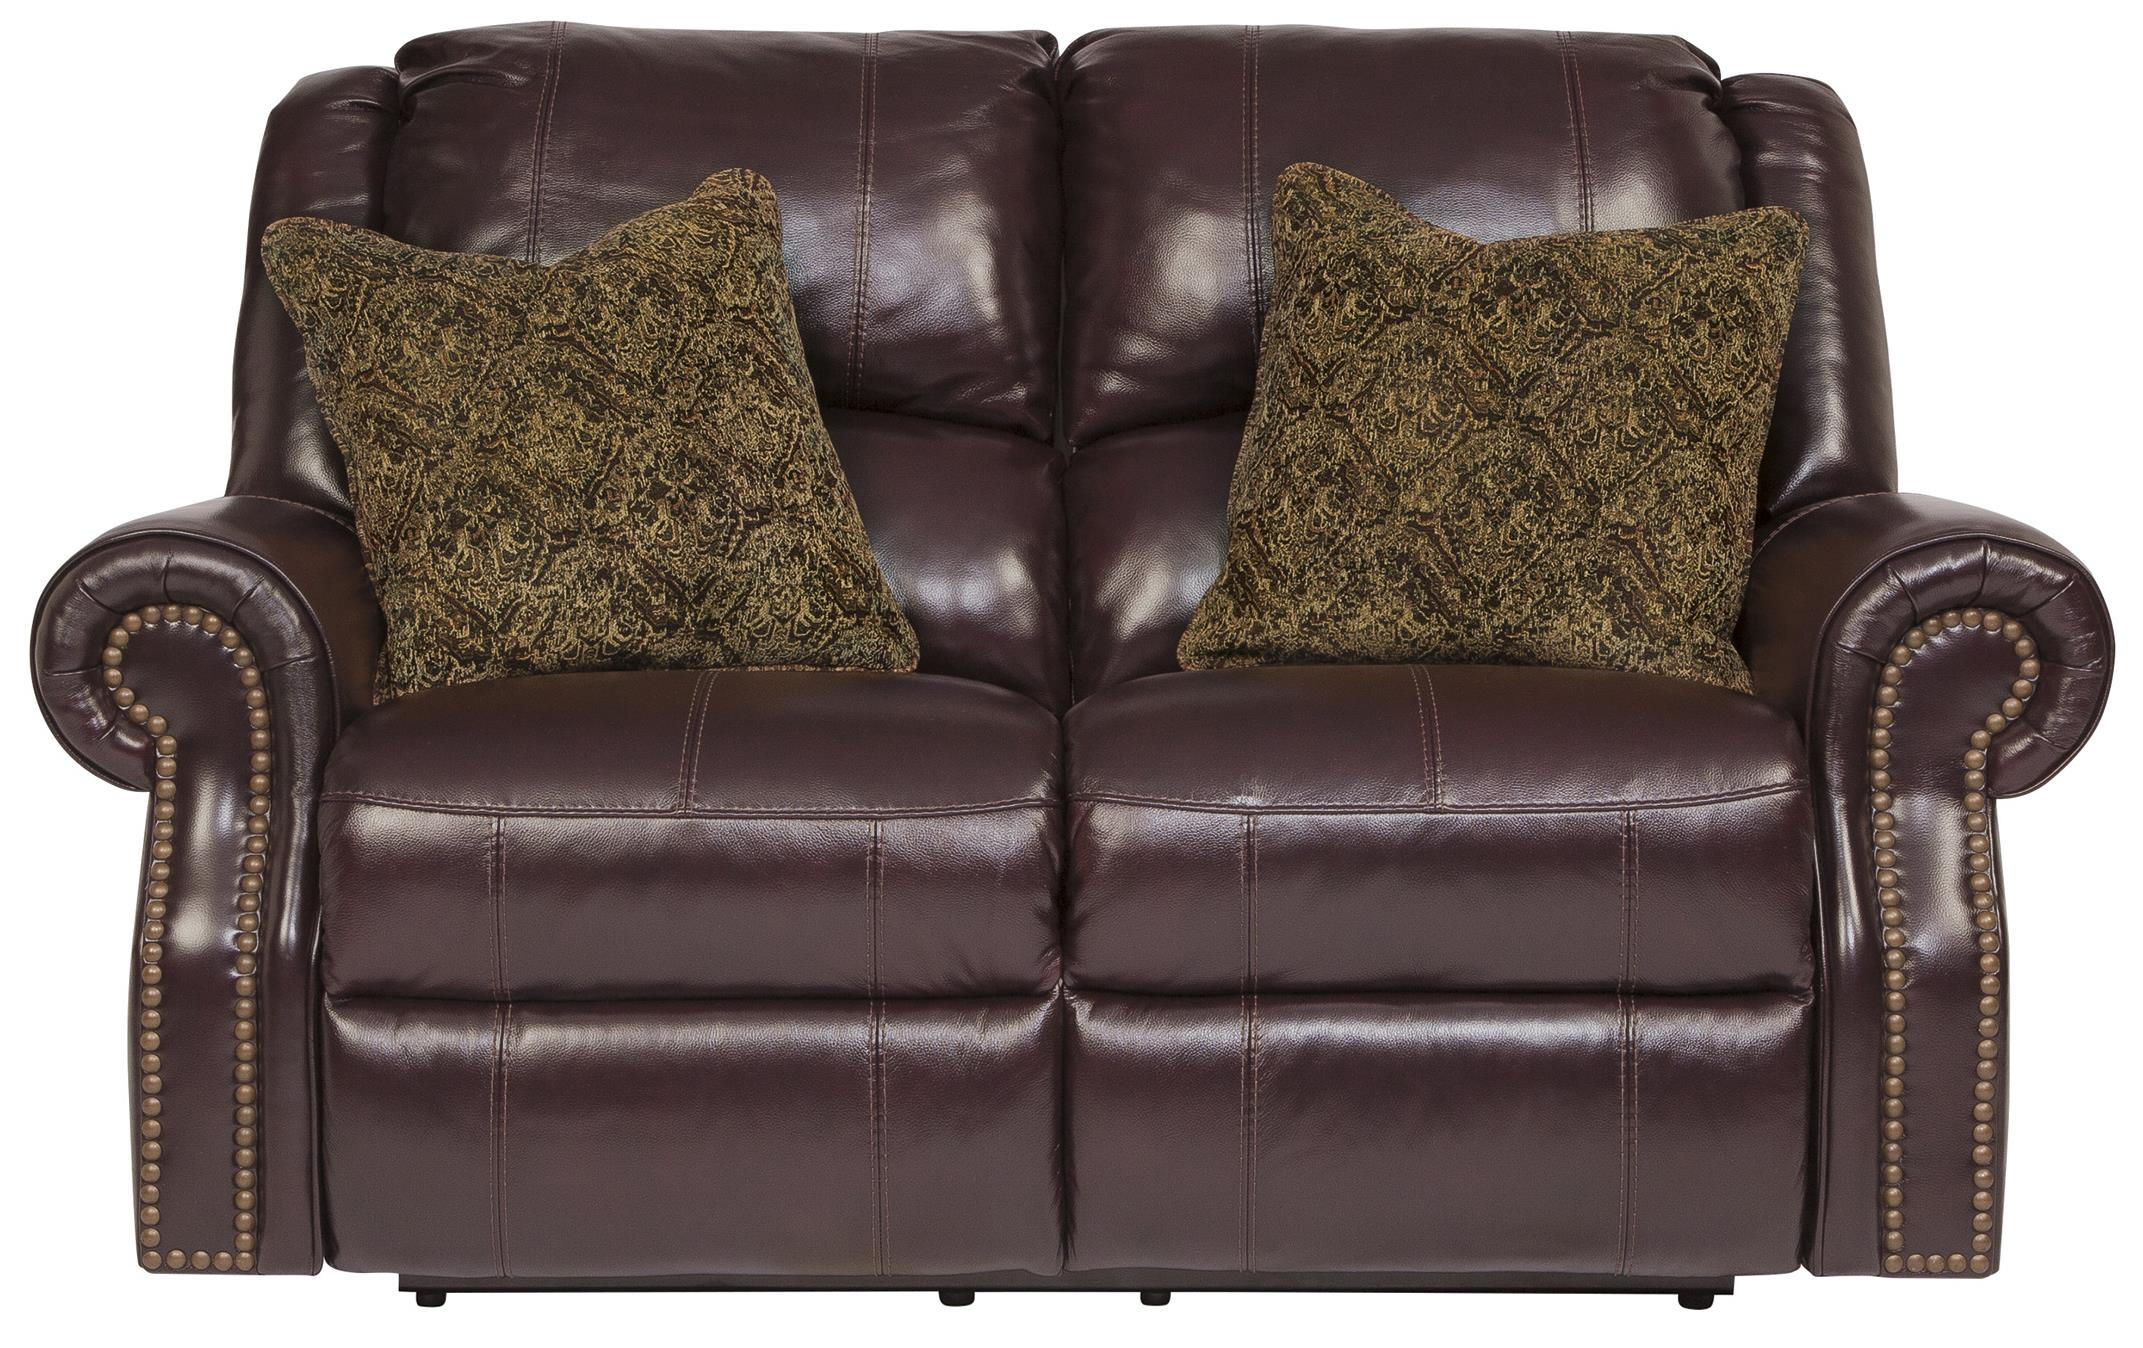 Signature Design By Ashley Walworth Leather Match Reclining Loveseat With Nailhead Trim